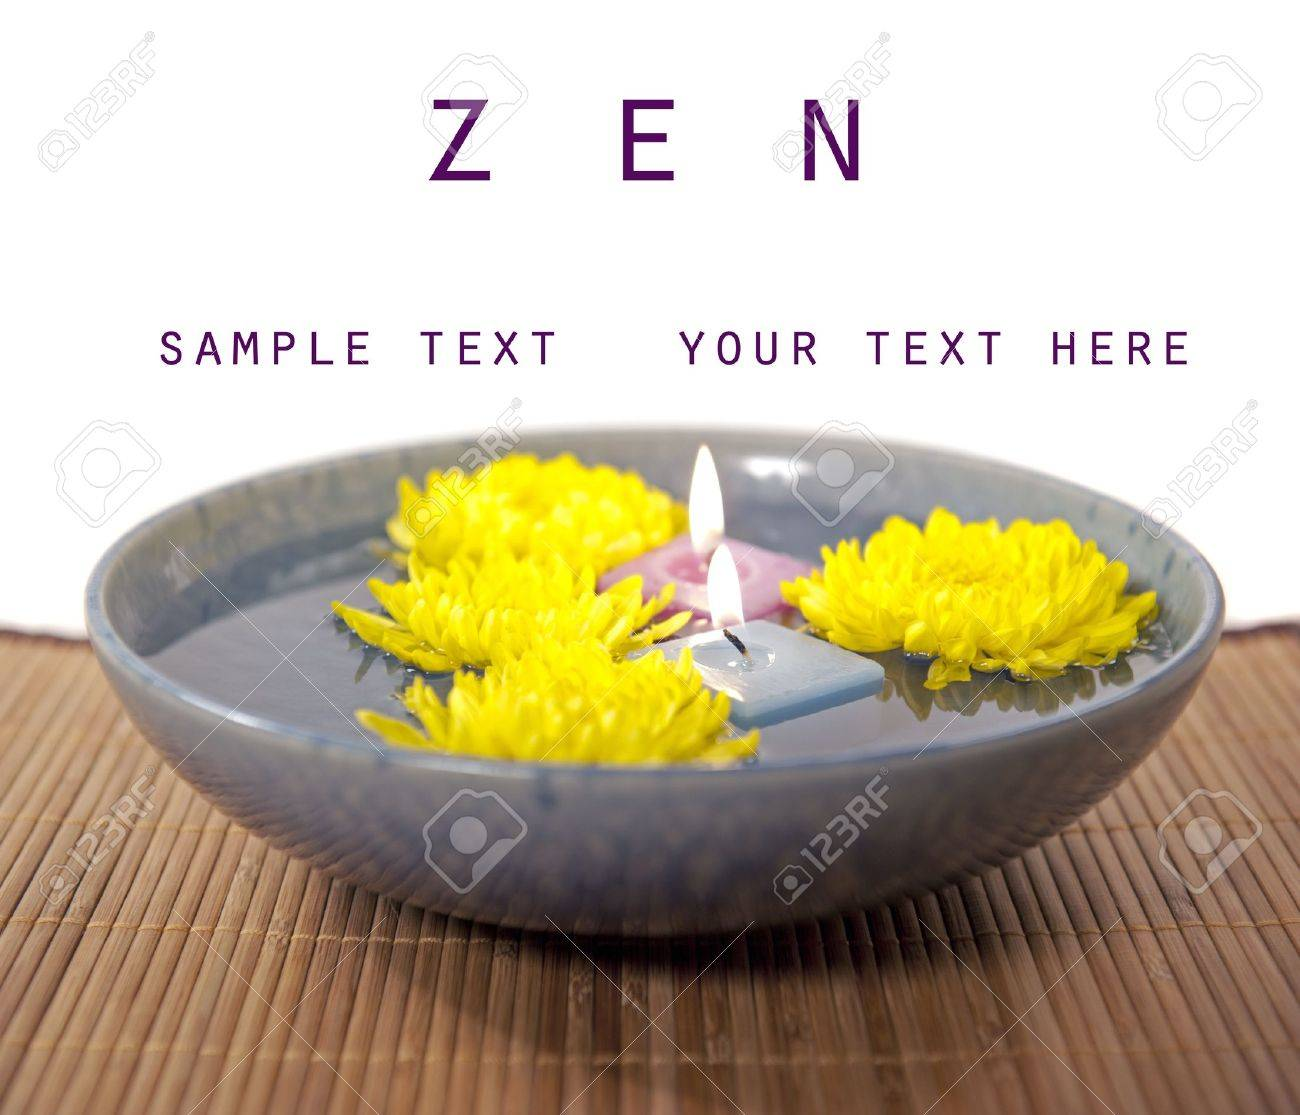 zen reflection chrysanthemum flowers with copy space - 8385424